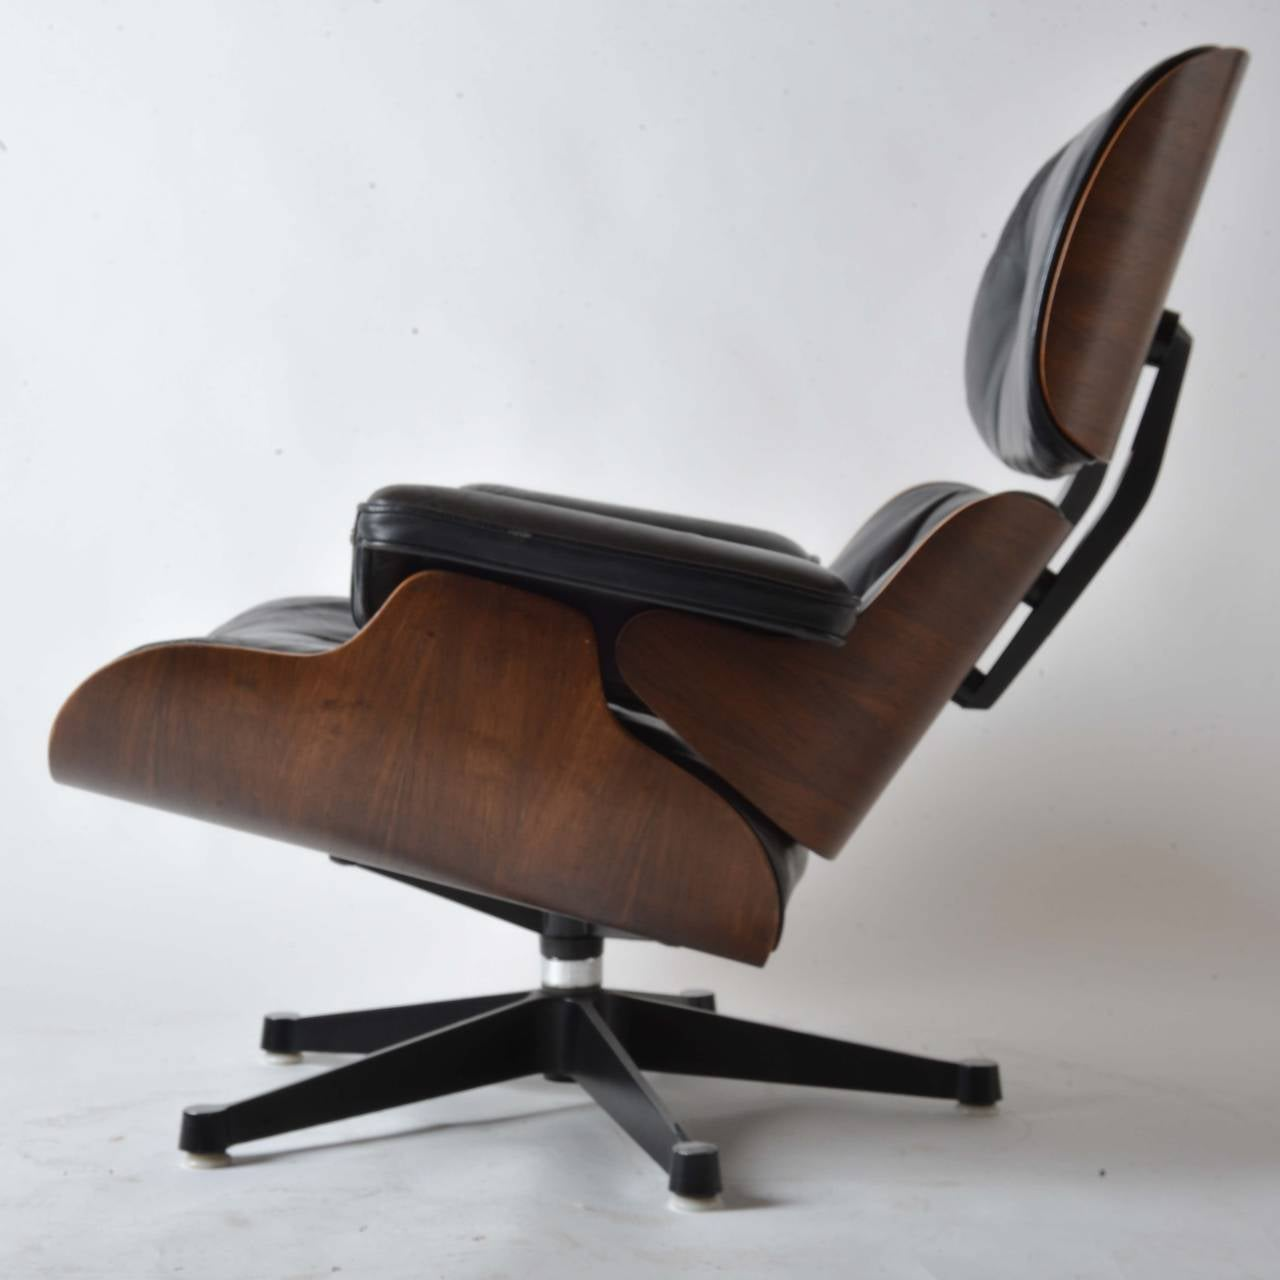 Iconic Eames Lounge Chair for Herman Miller For Sale at